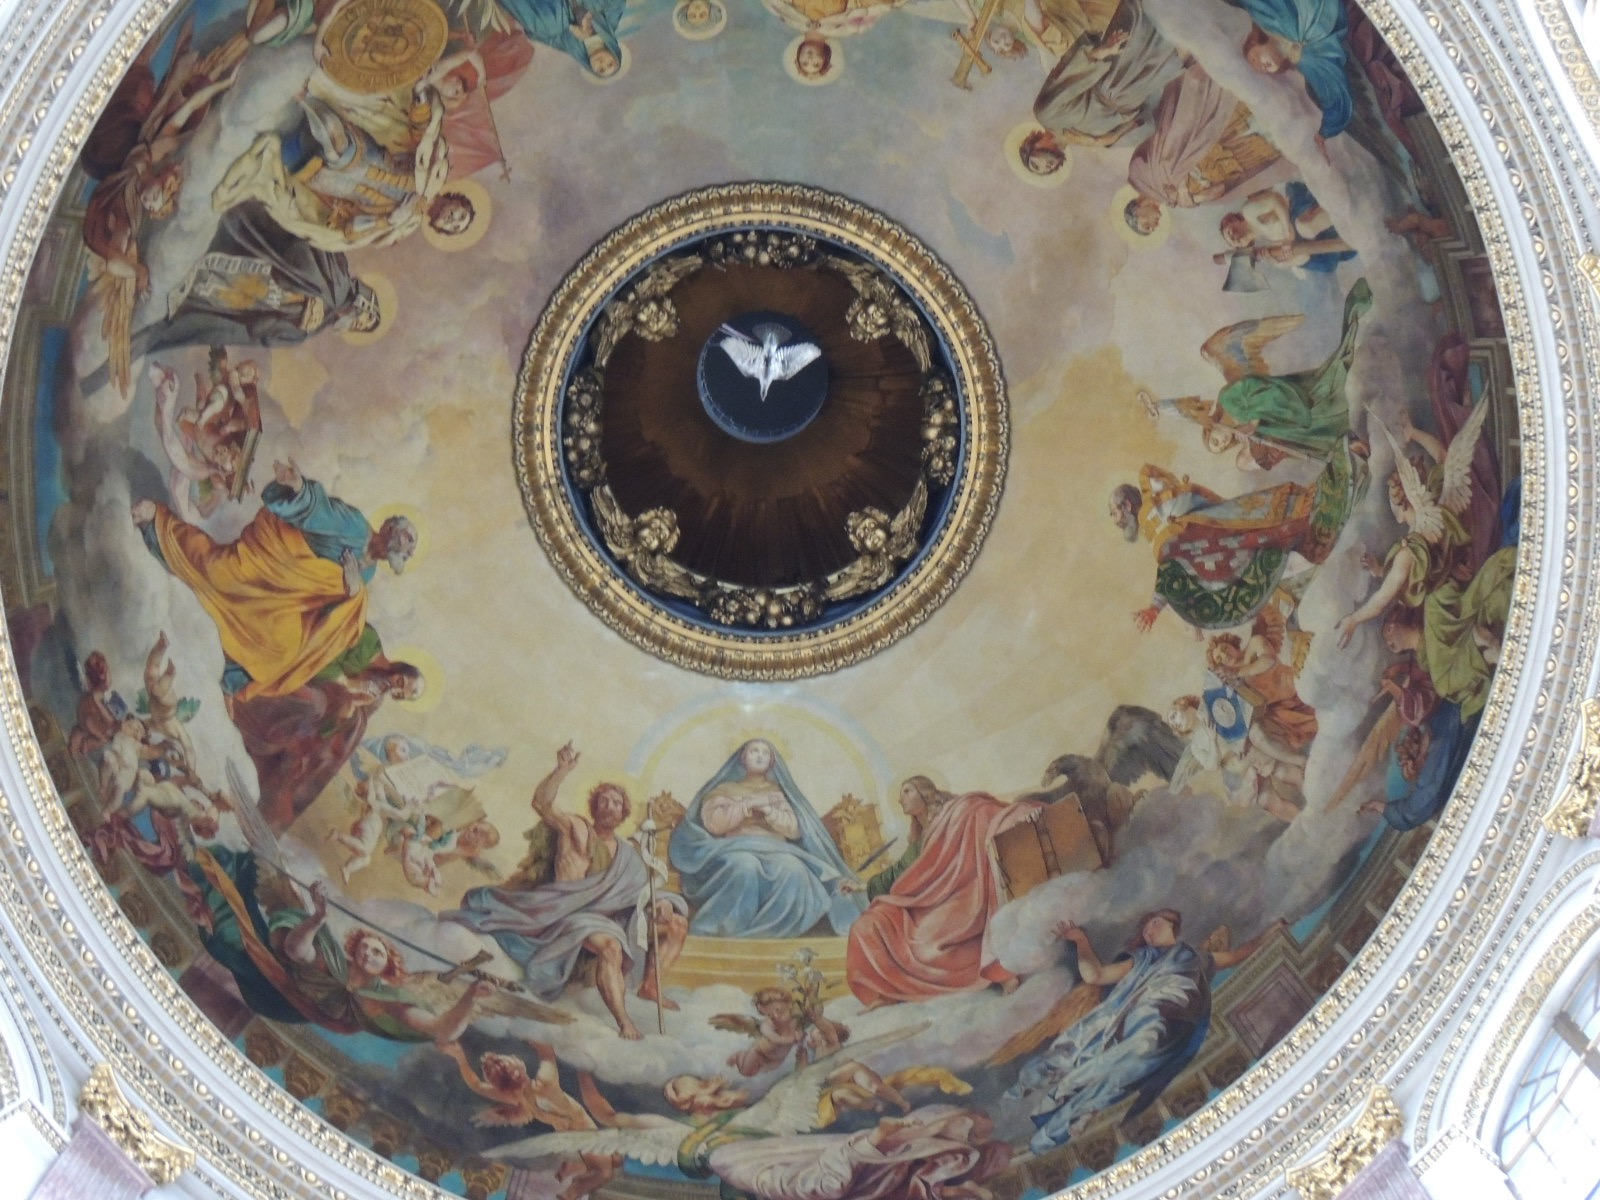 Dome of St. Isaac's